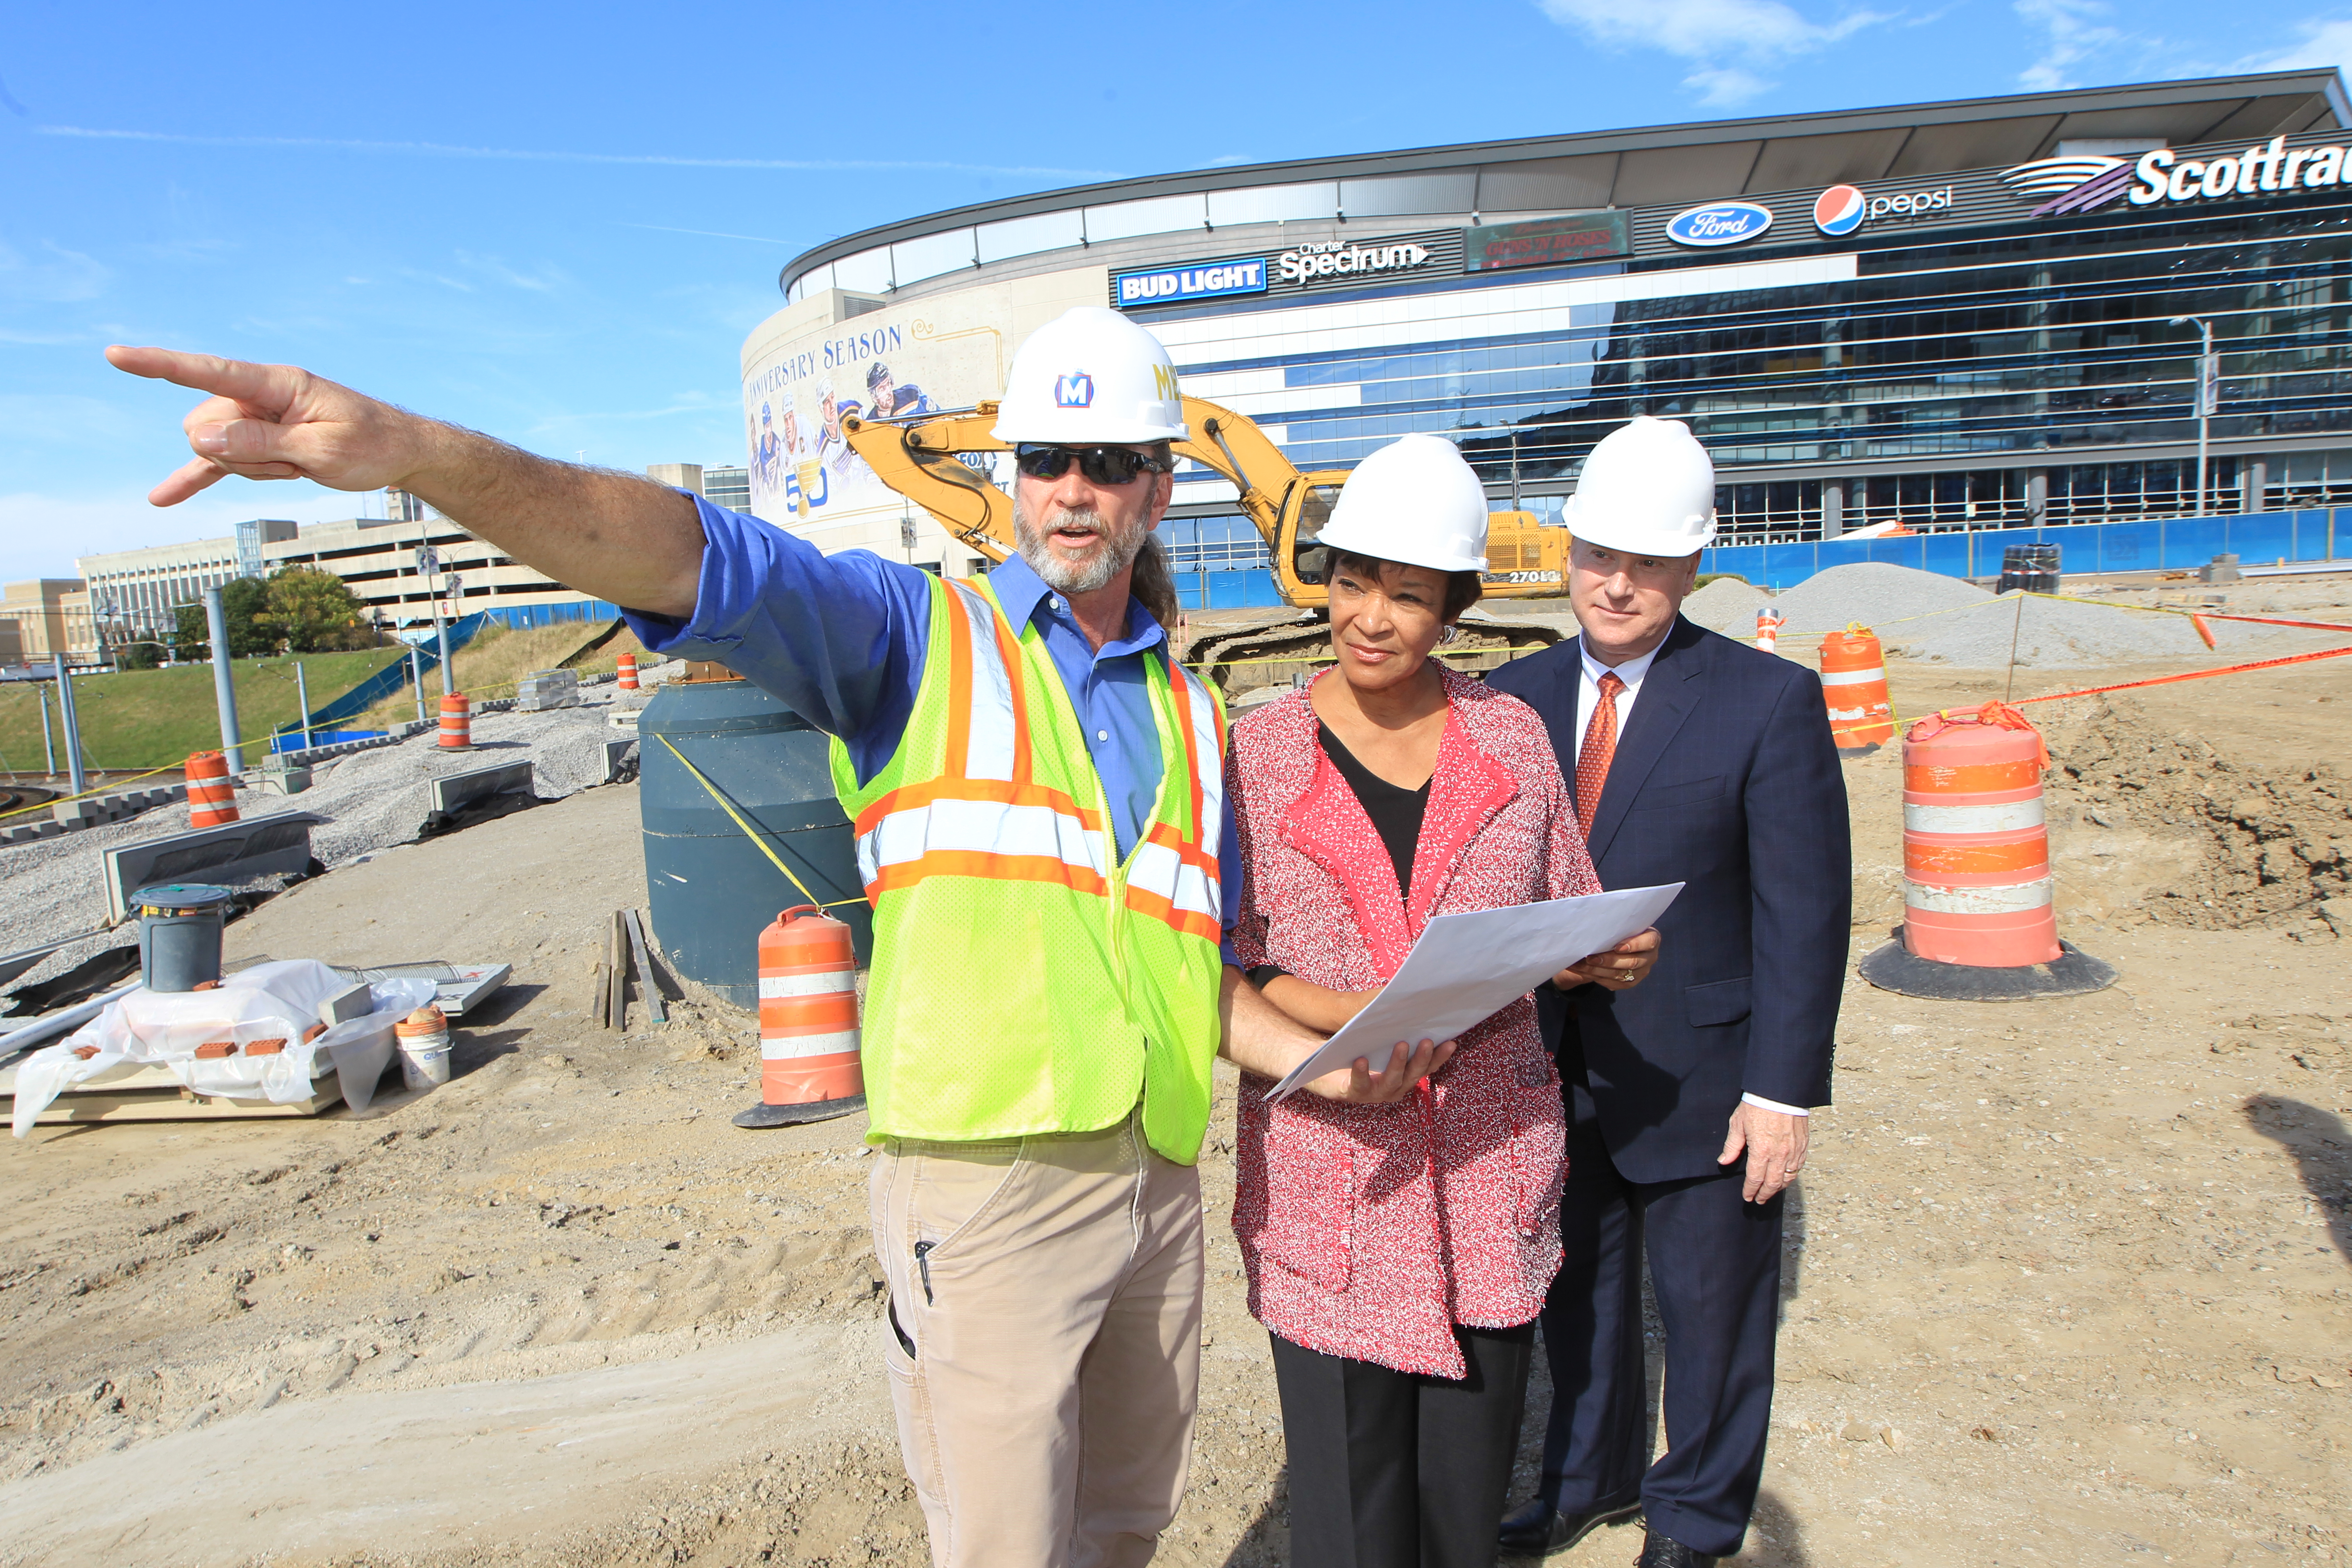 Federal Transit Administration's Top Leader Tours  Federally-Funded Metro Transit Project Sites